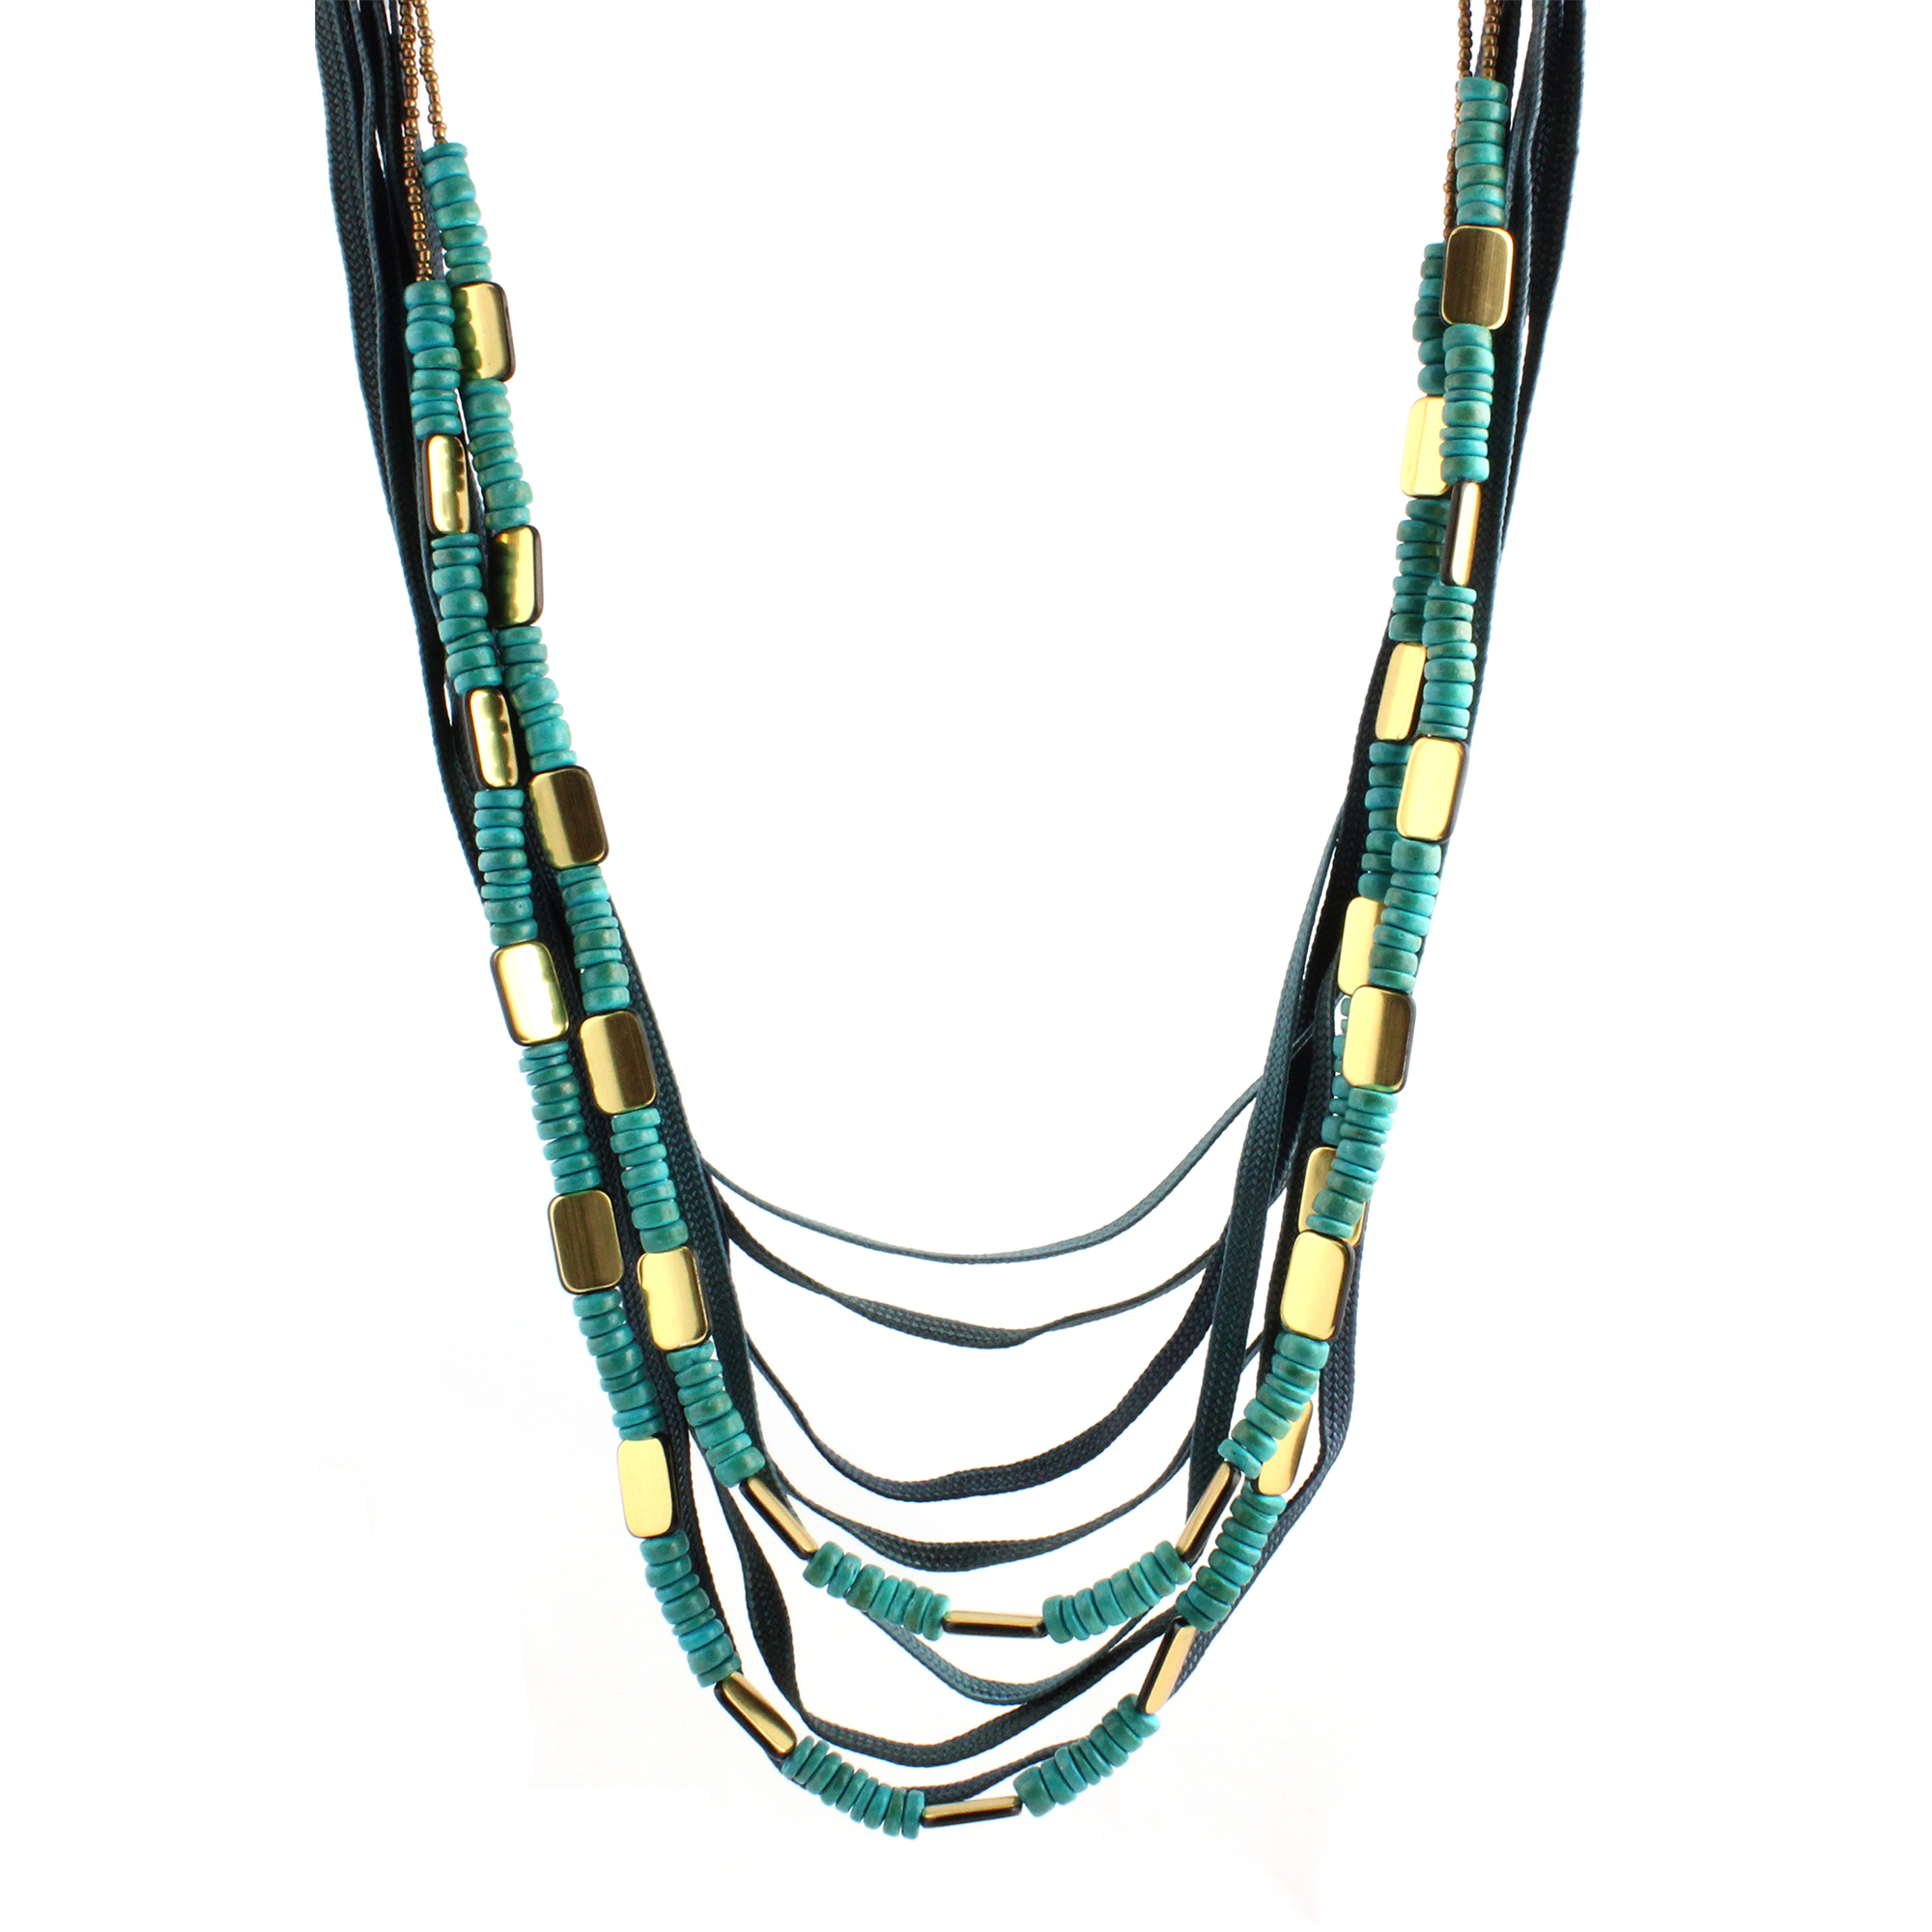 Multi Strand Long Polyester Necklace, Blue, Green Beads, Wood/ Gold Plated Zinc 36